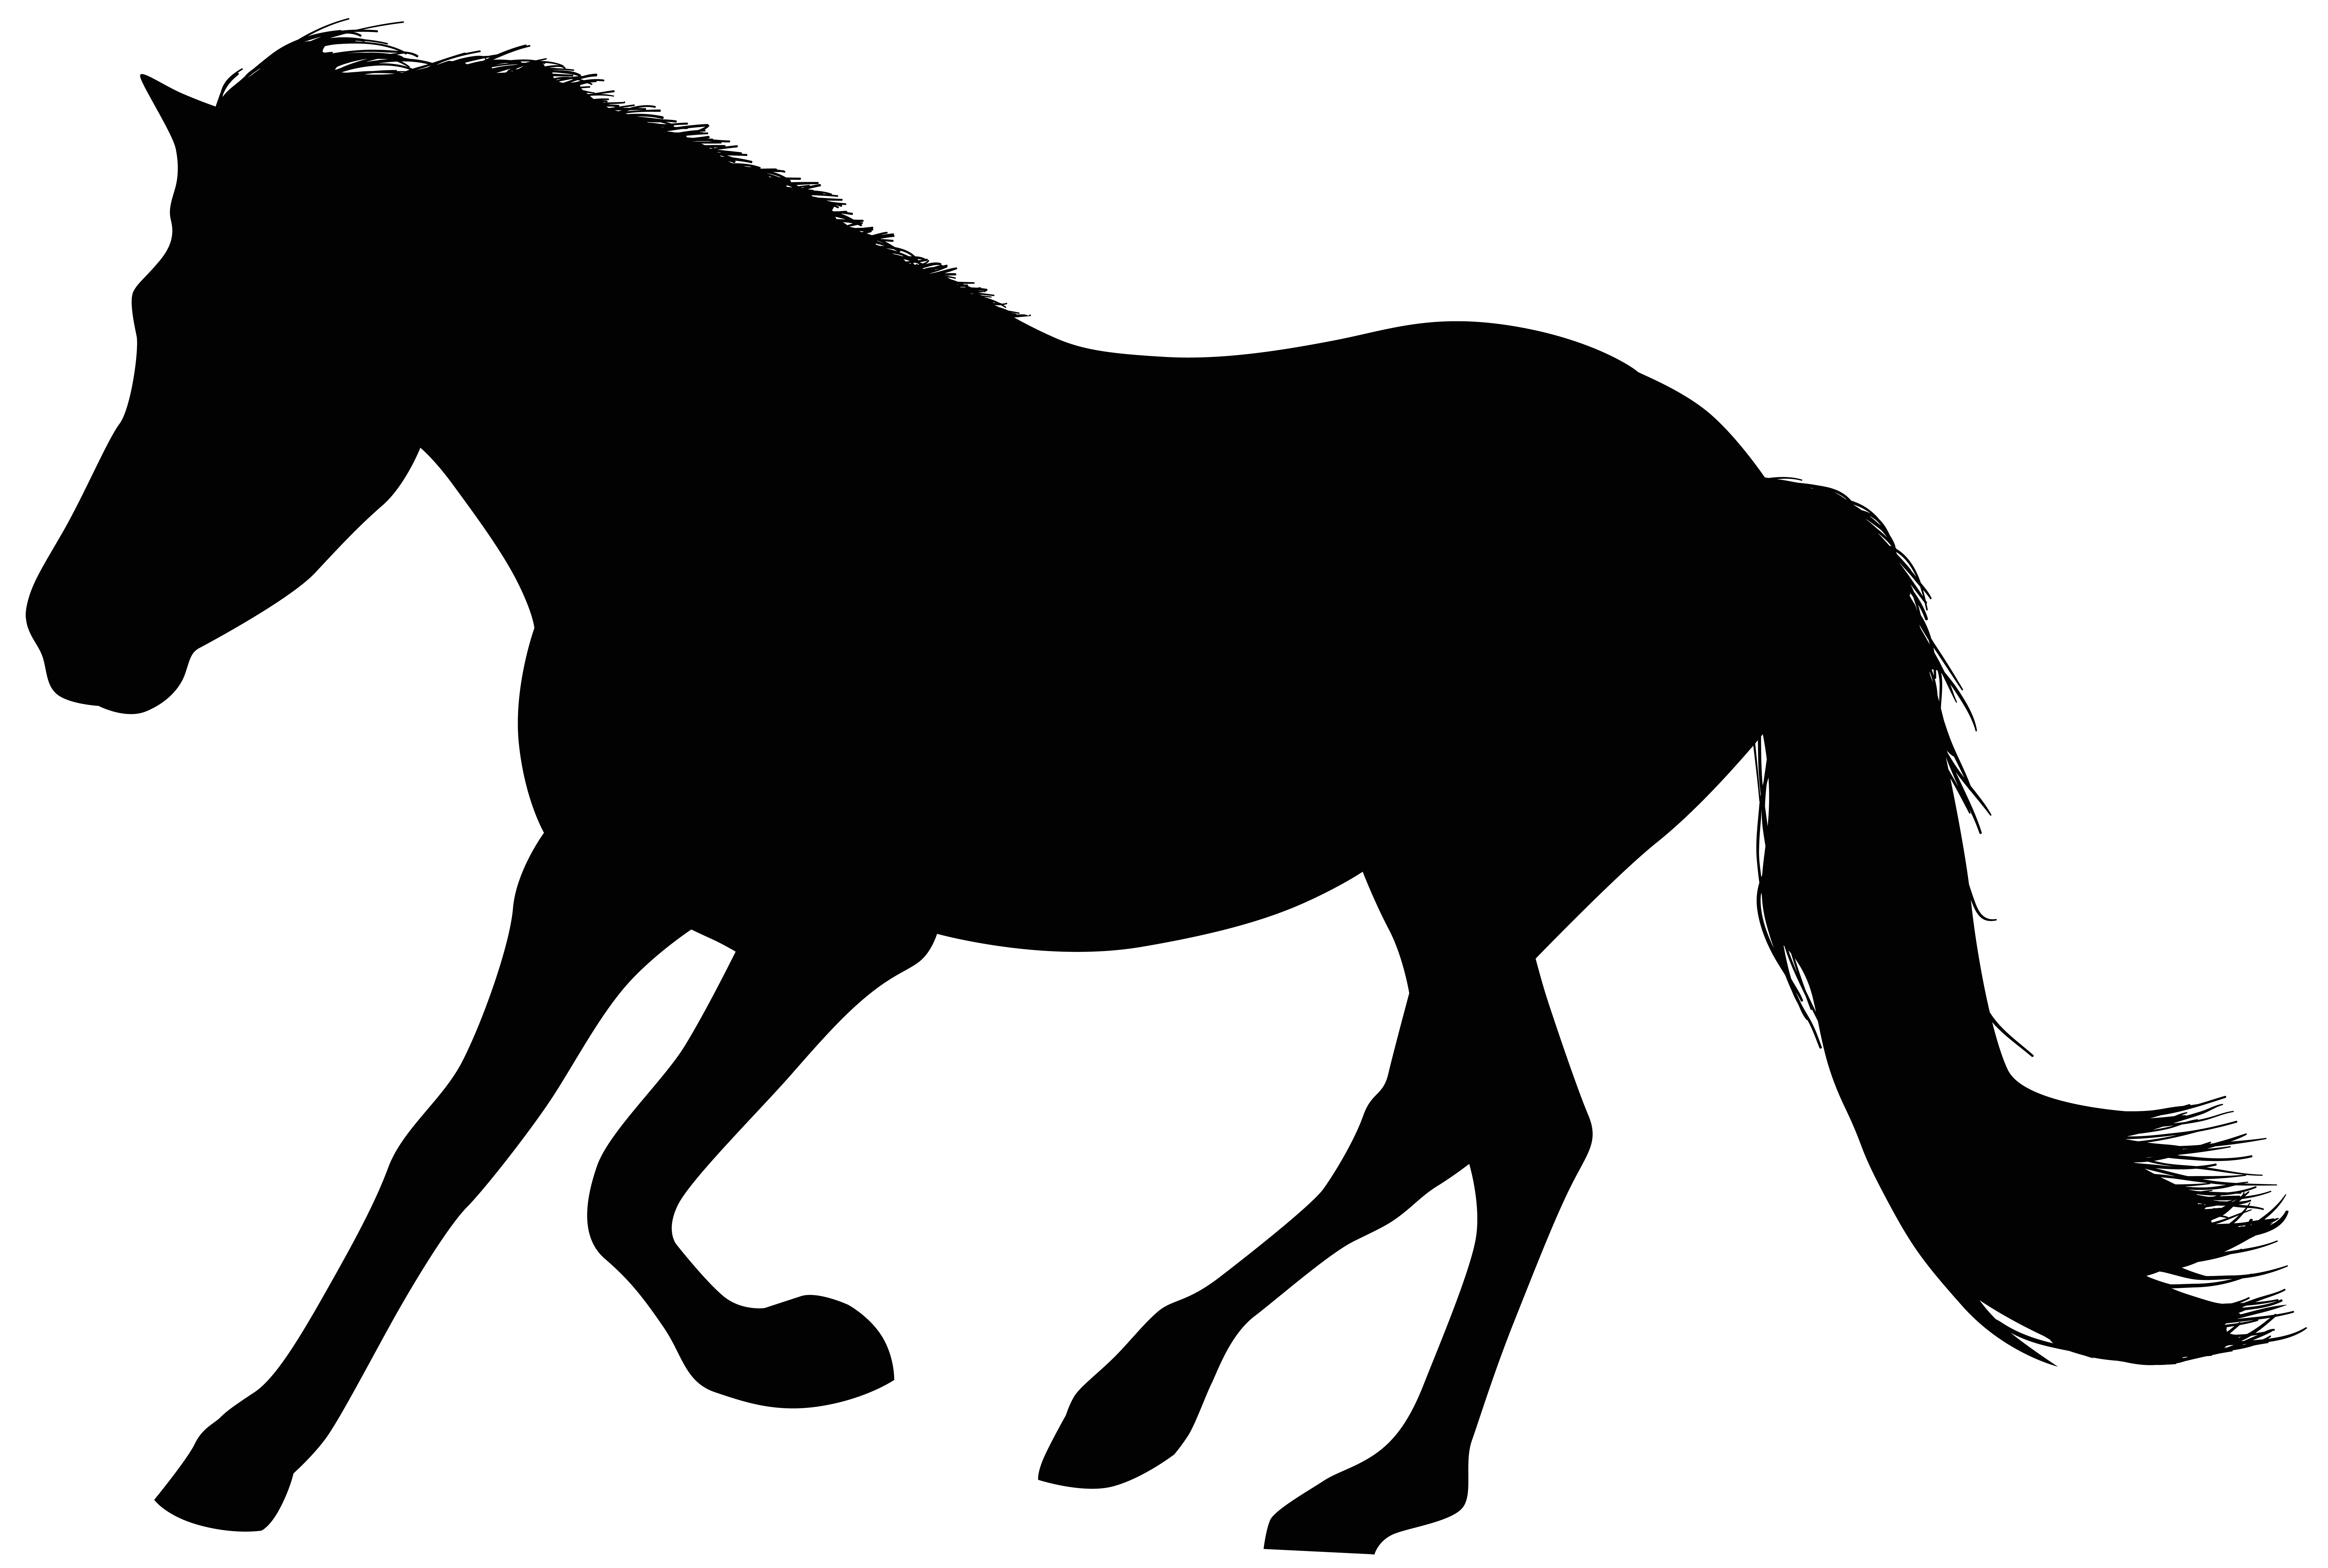 vector freeuse library Running Horse Silhouette Clip Art at GetDrawings